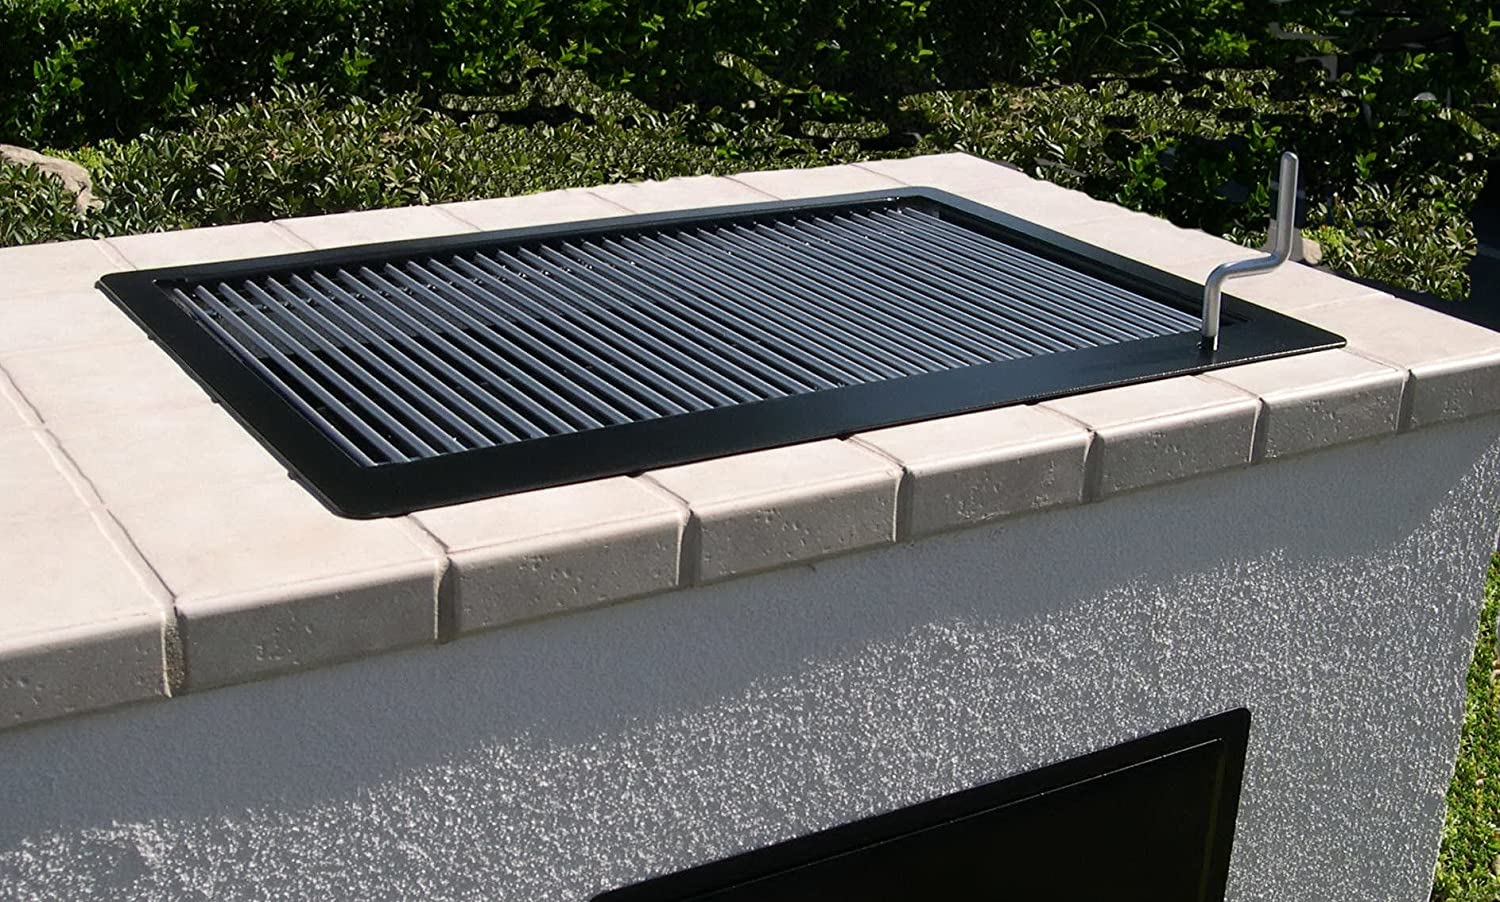 Best Built-in Grill 3